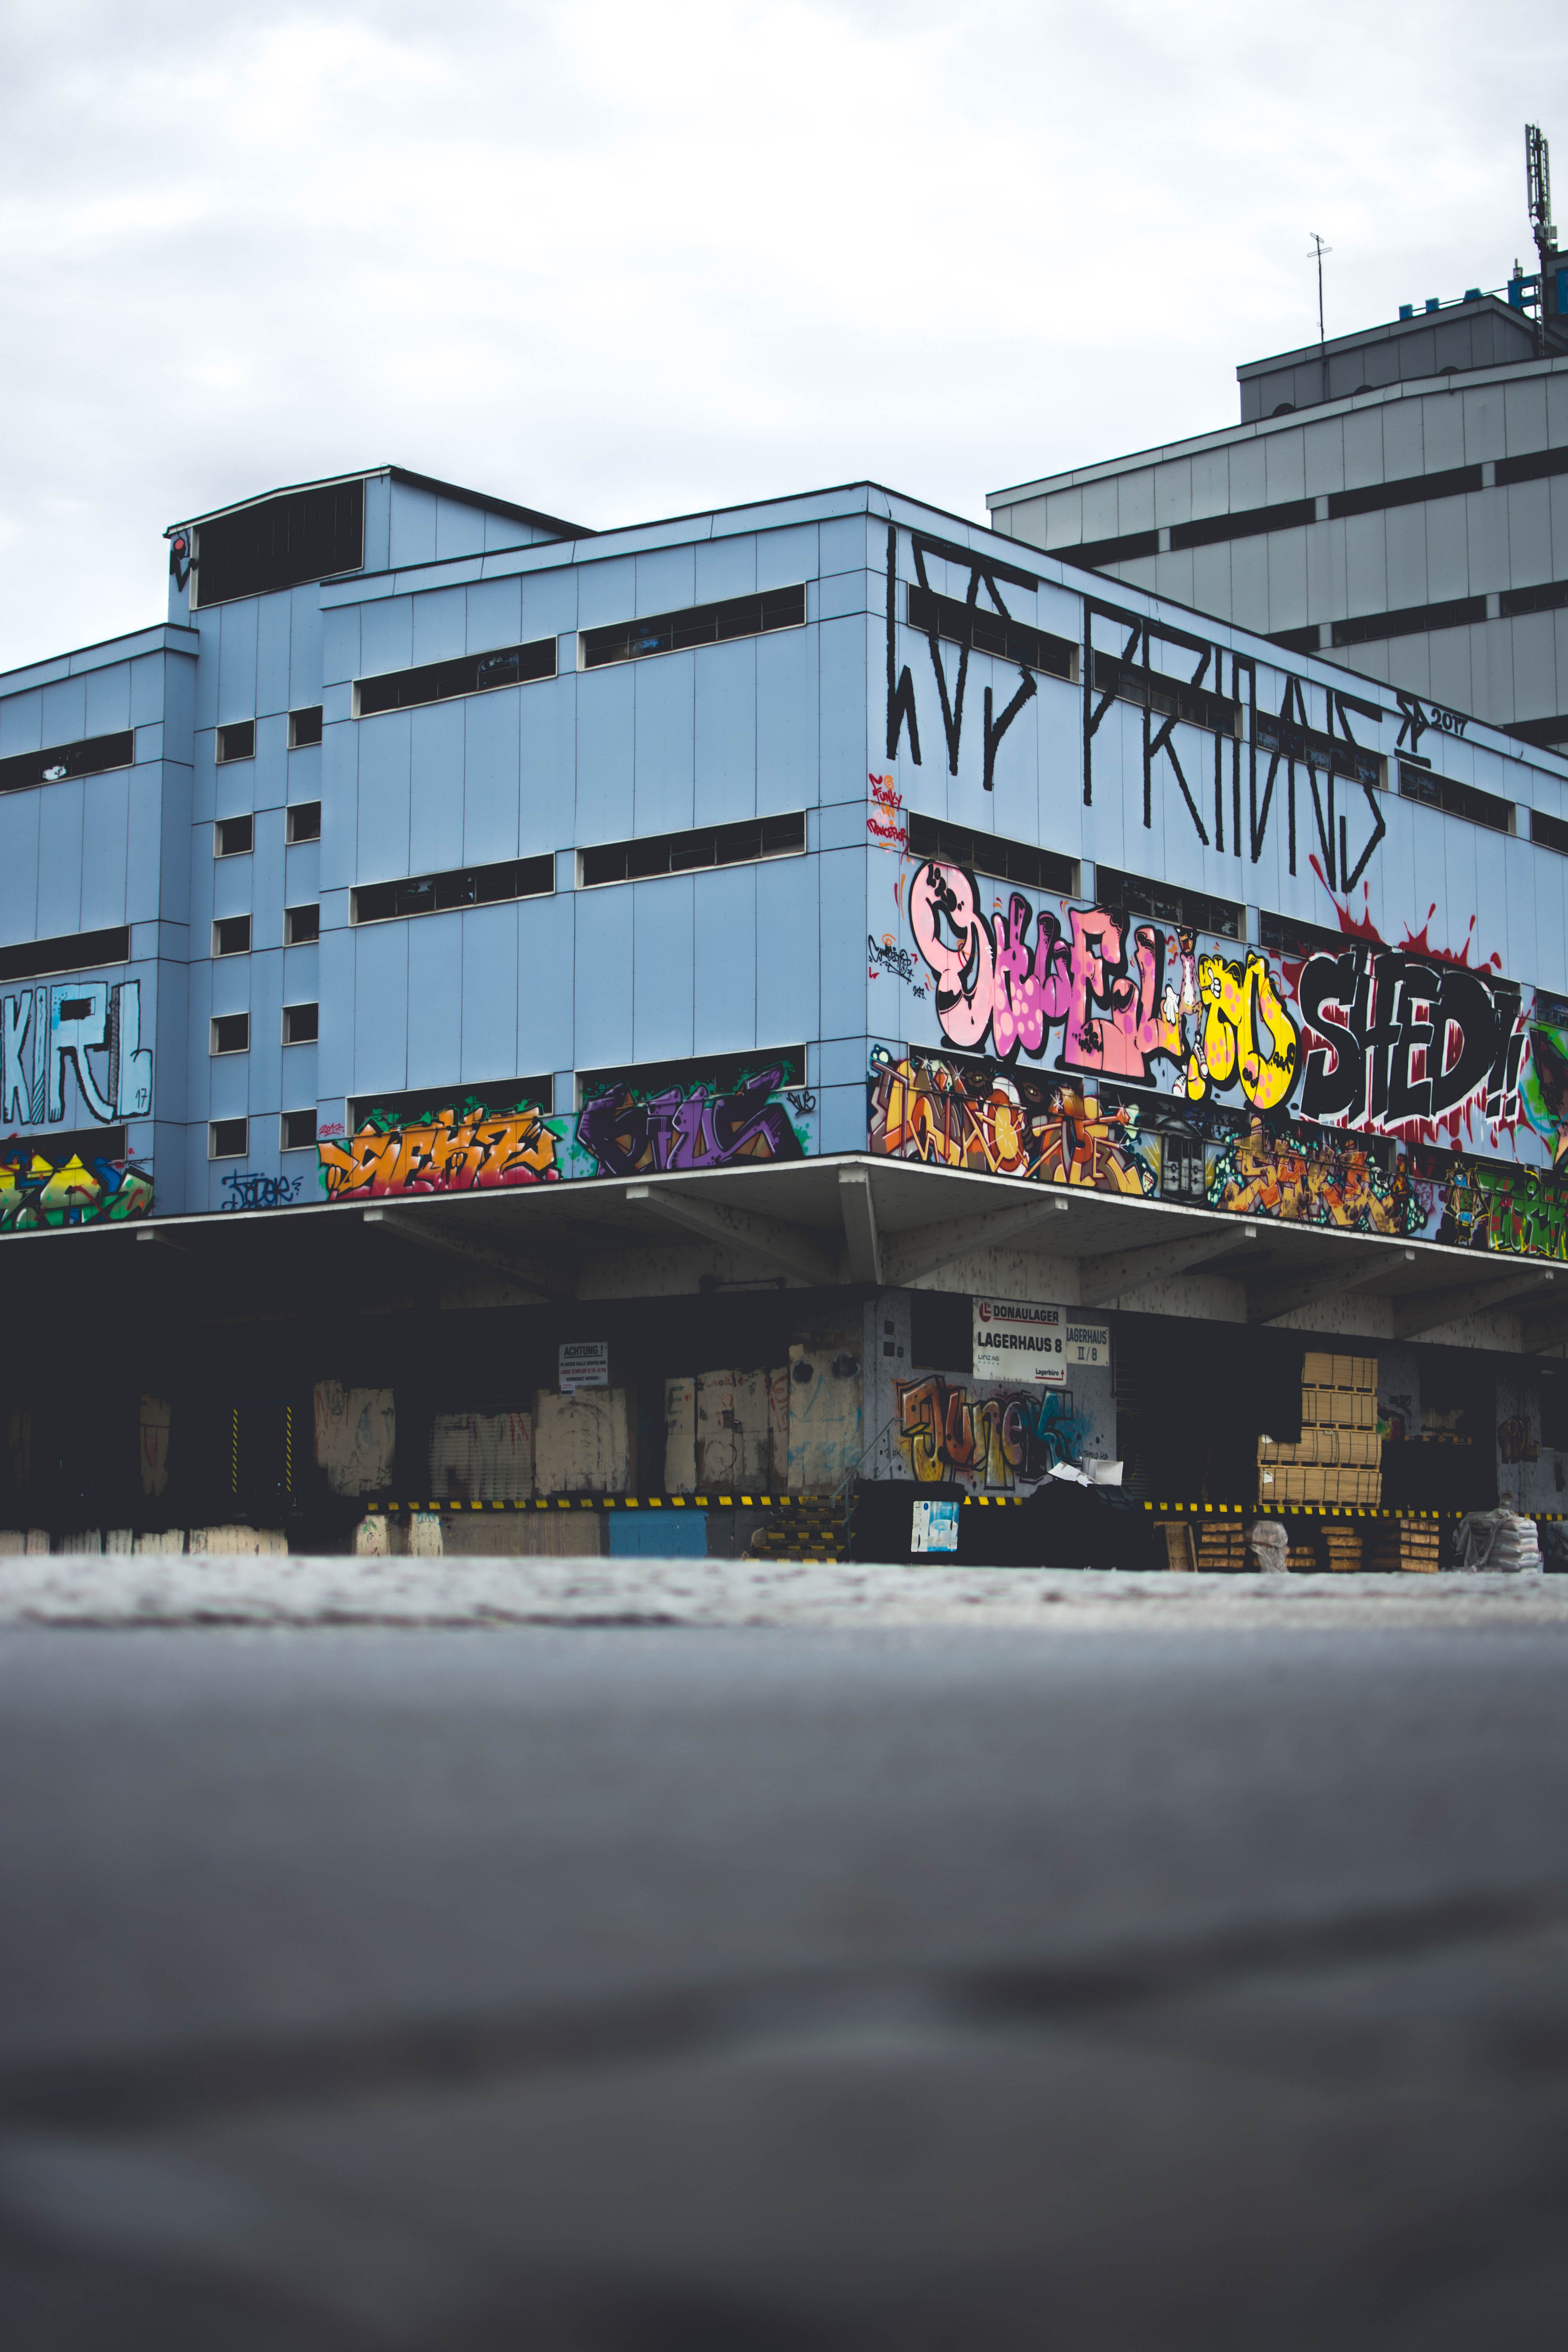 Building Covered With Graffiti